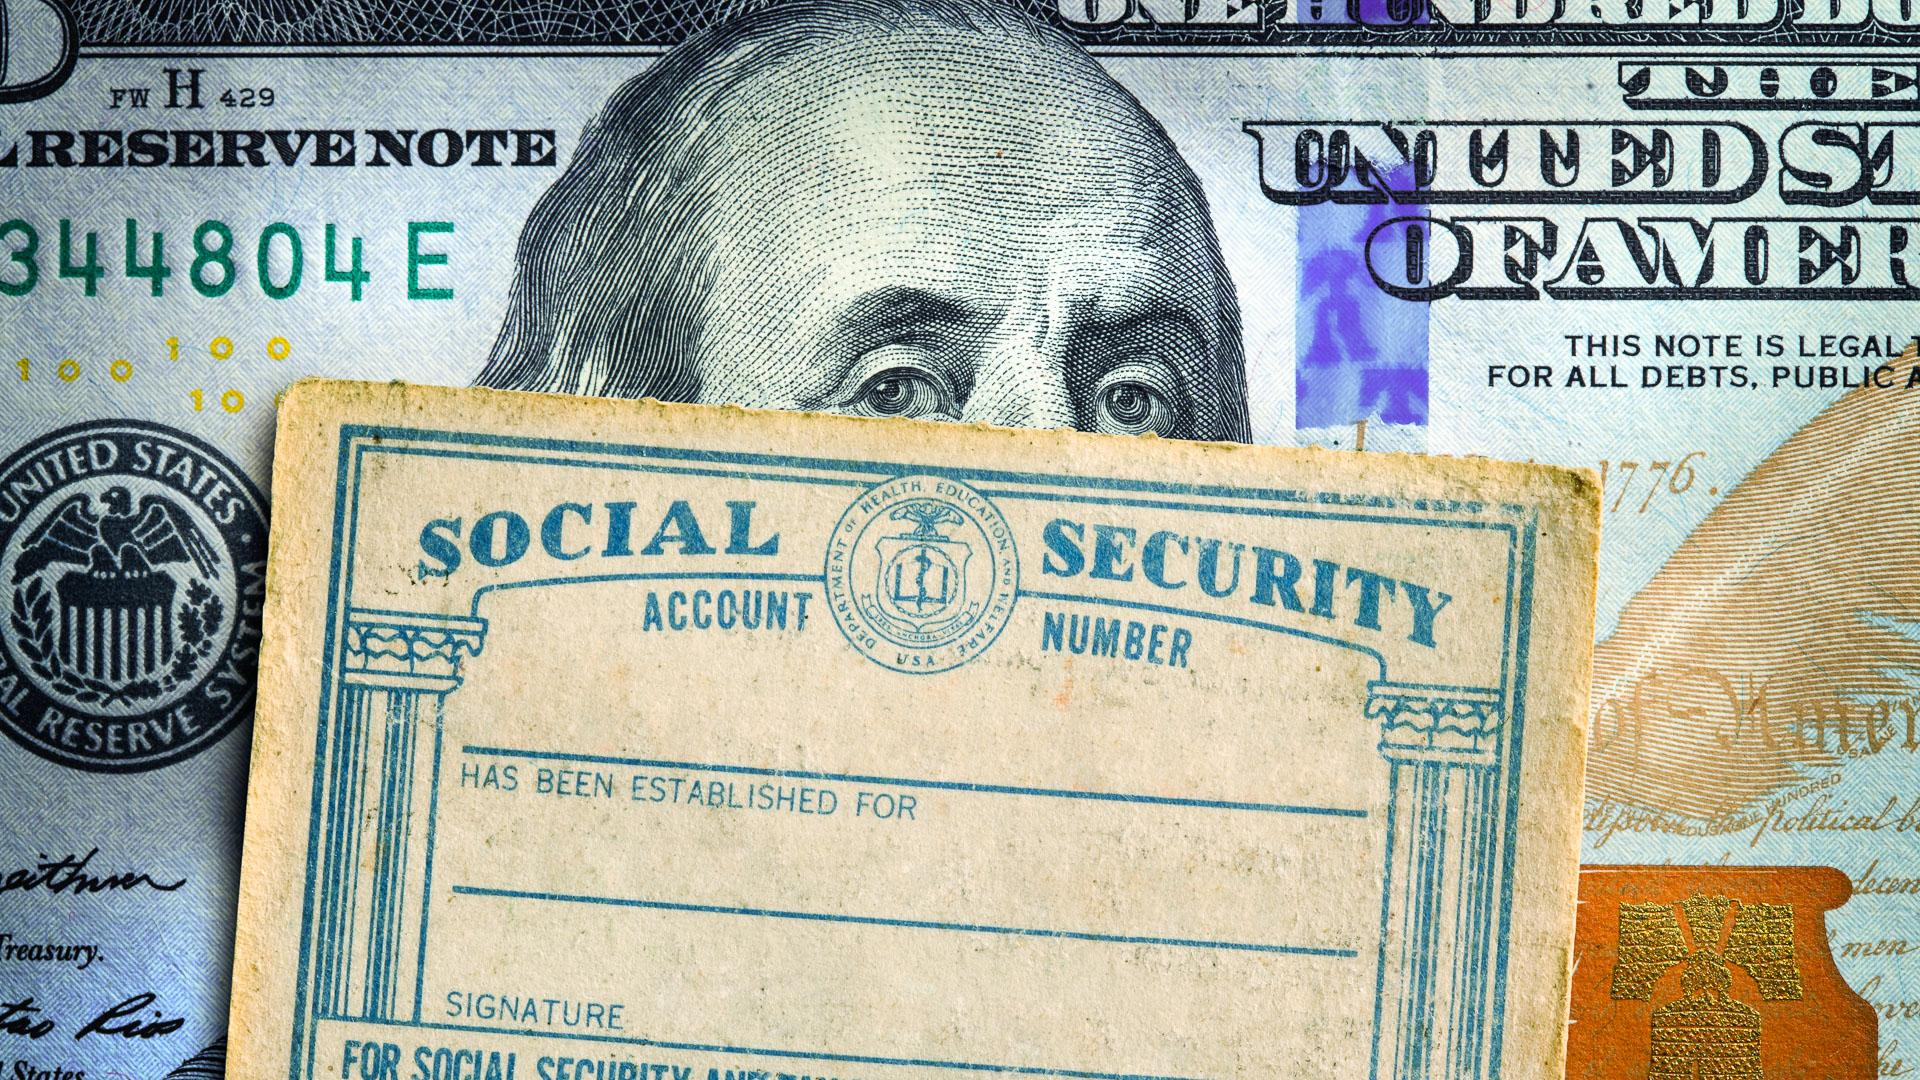 A Social Security card rests on top of a one hundred dollar bill.